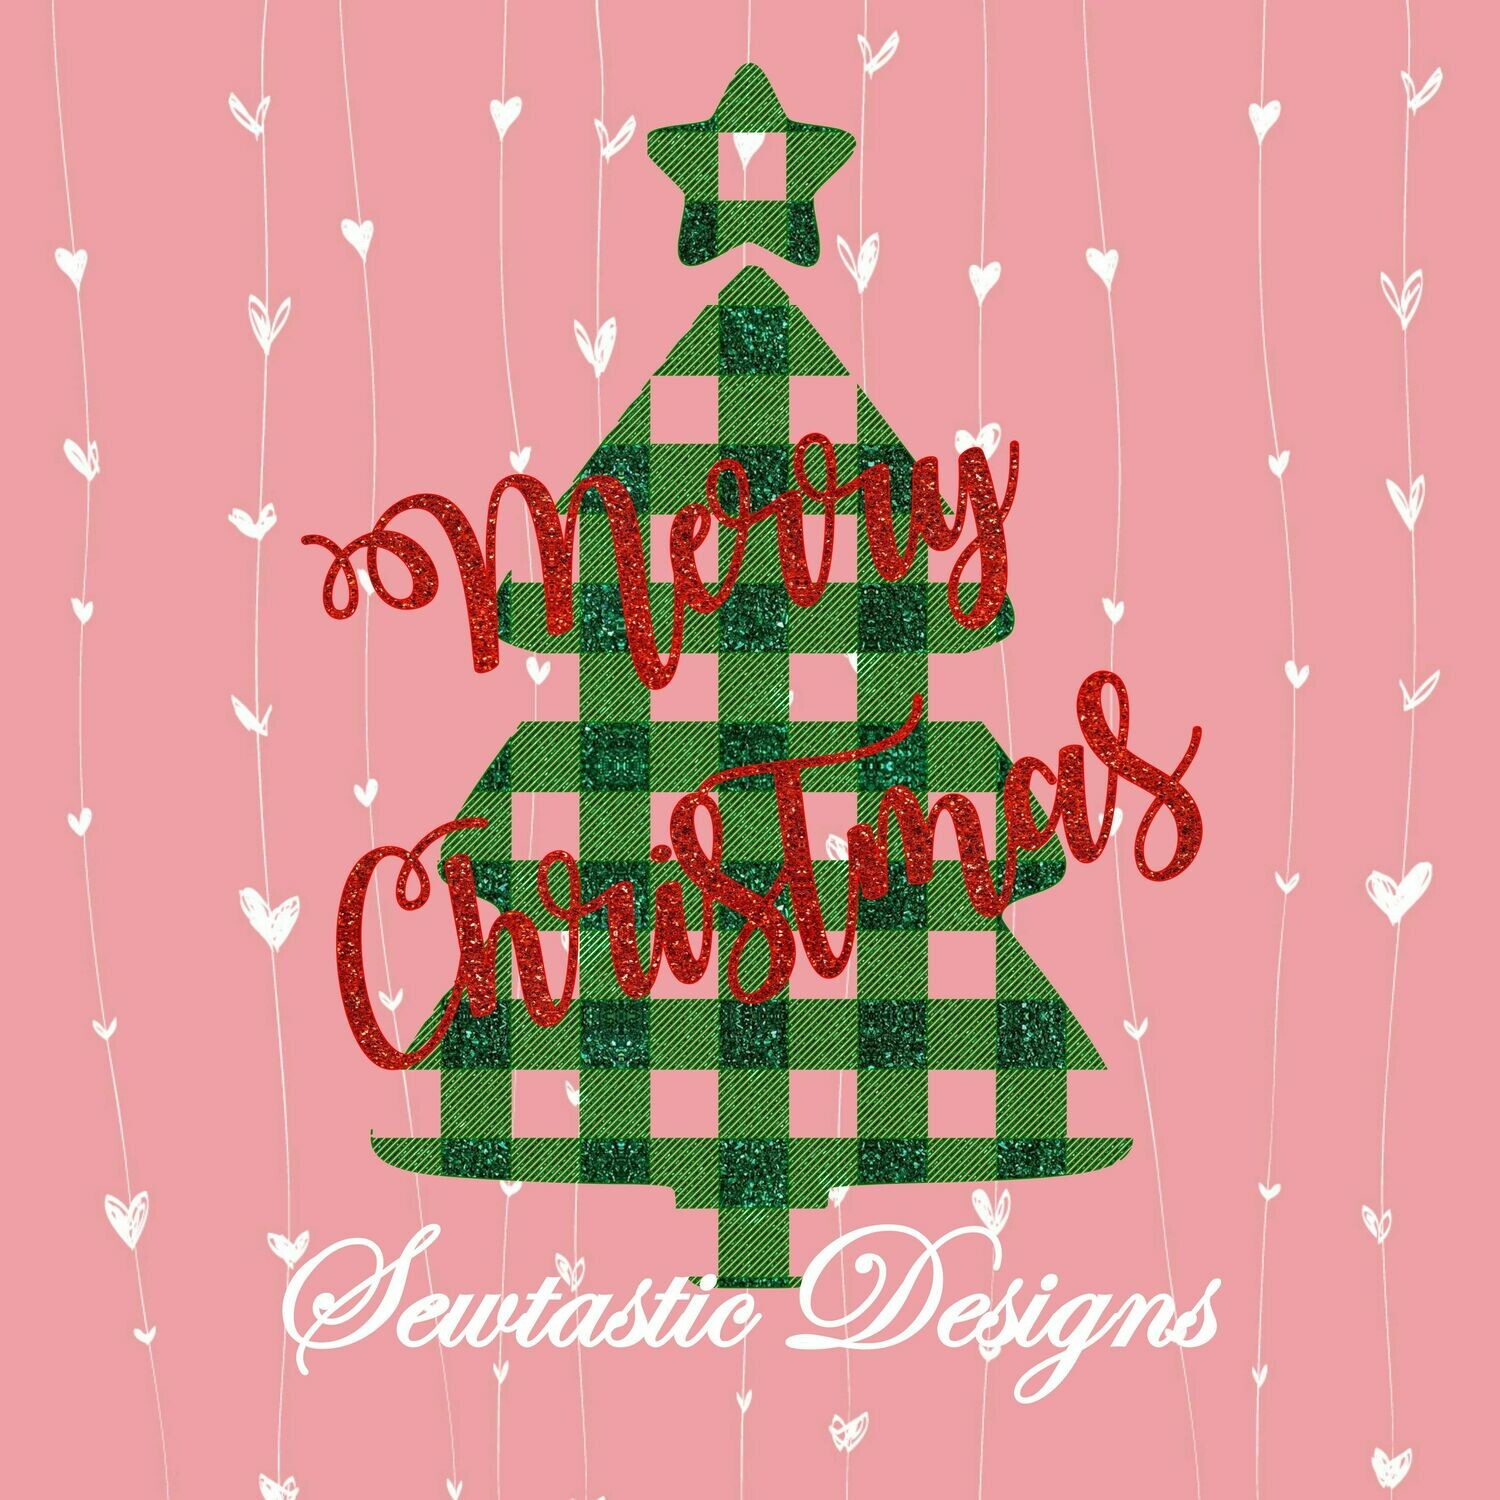 Merry Christmas Tree Svg Merry Christmas Svg Christmas Tree Svg Buffalo Plaid Svg Christmas Svg Cut File Iron On Decal Cricut Silhouette Scanncut Many More